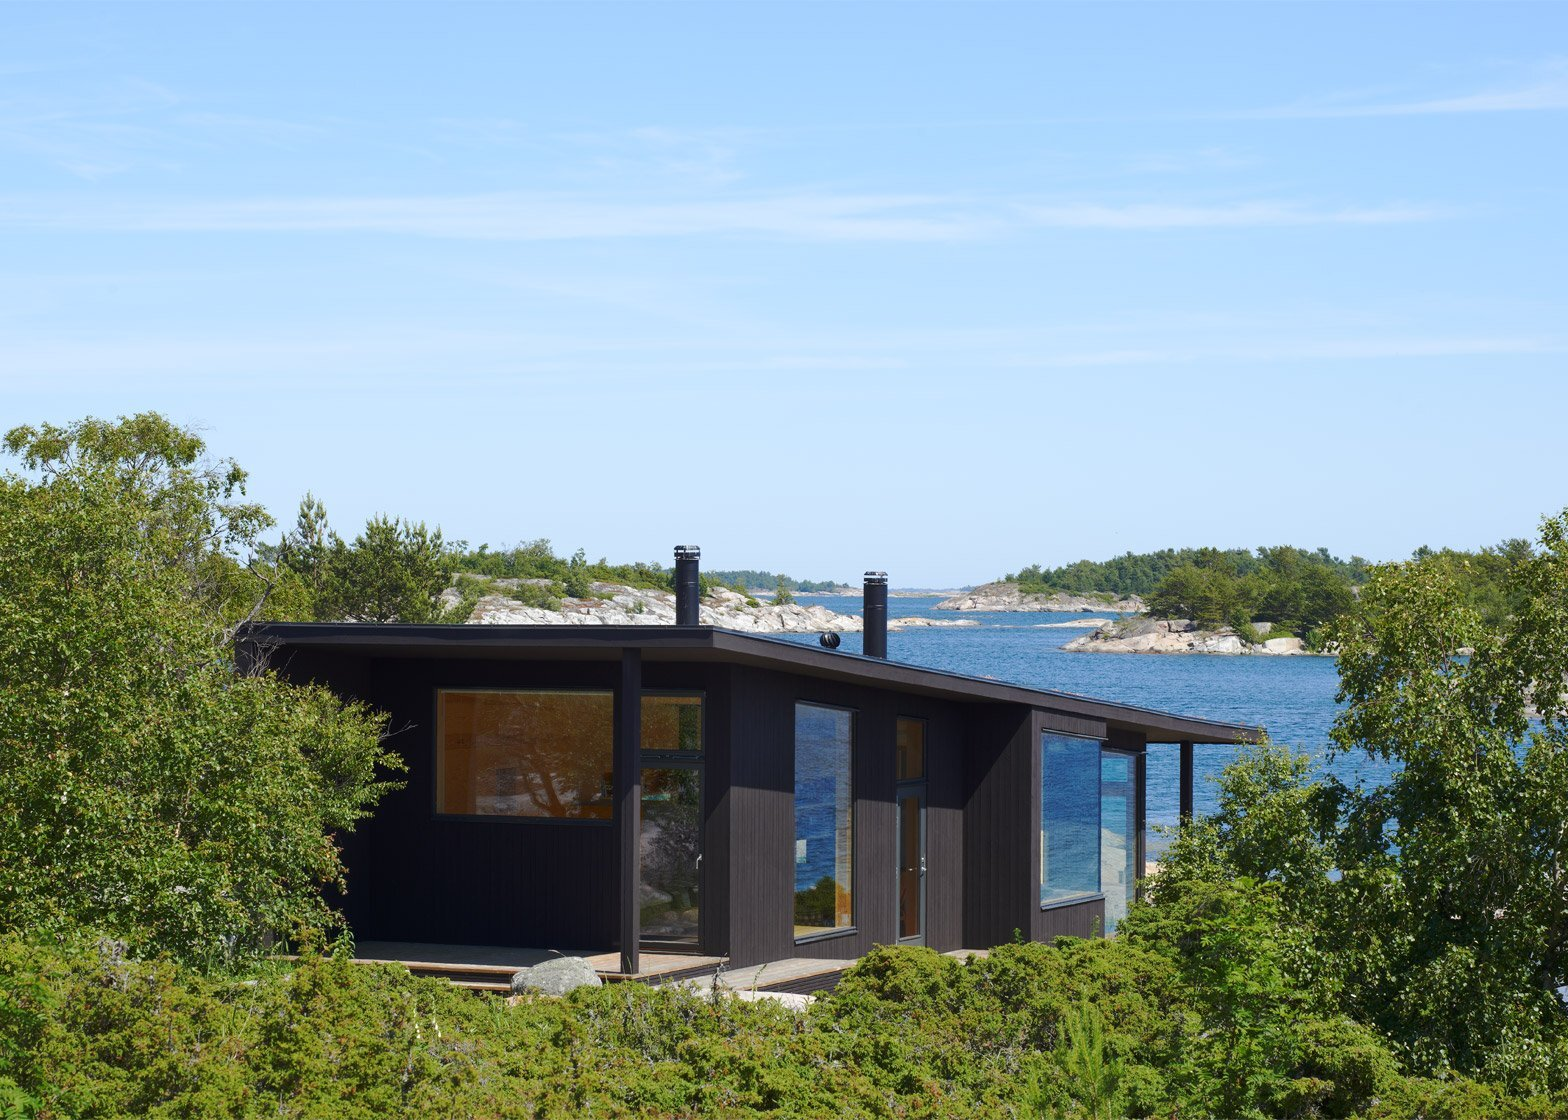 Small Cabins - Margen Wigow Arkitektkontor - Stockholm Archipelago - Exterior - Humble Homes